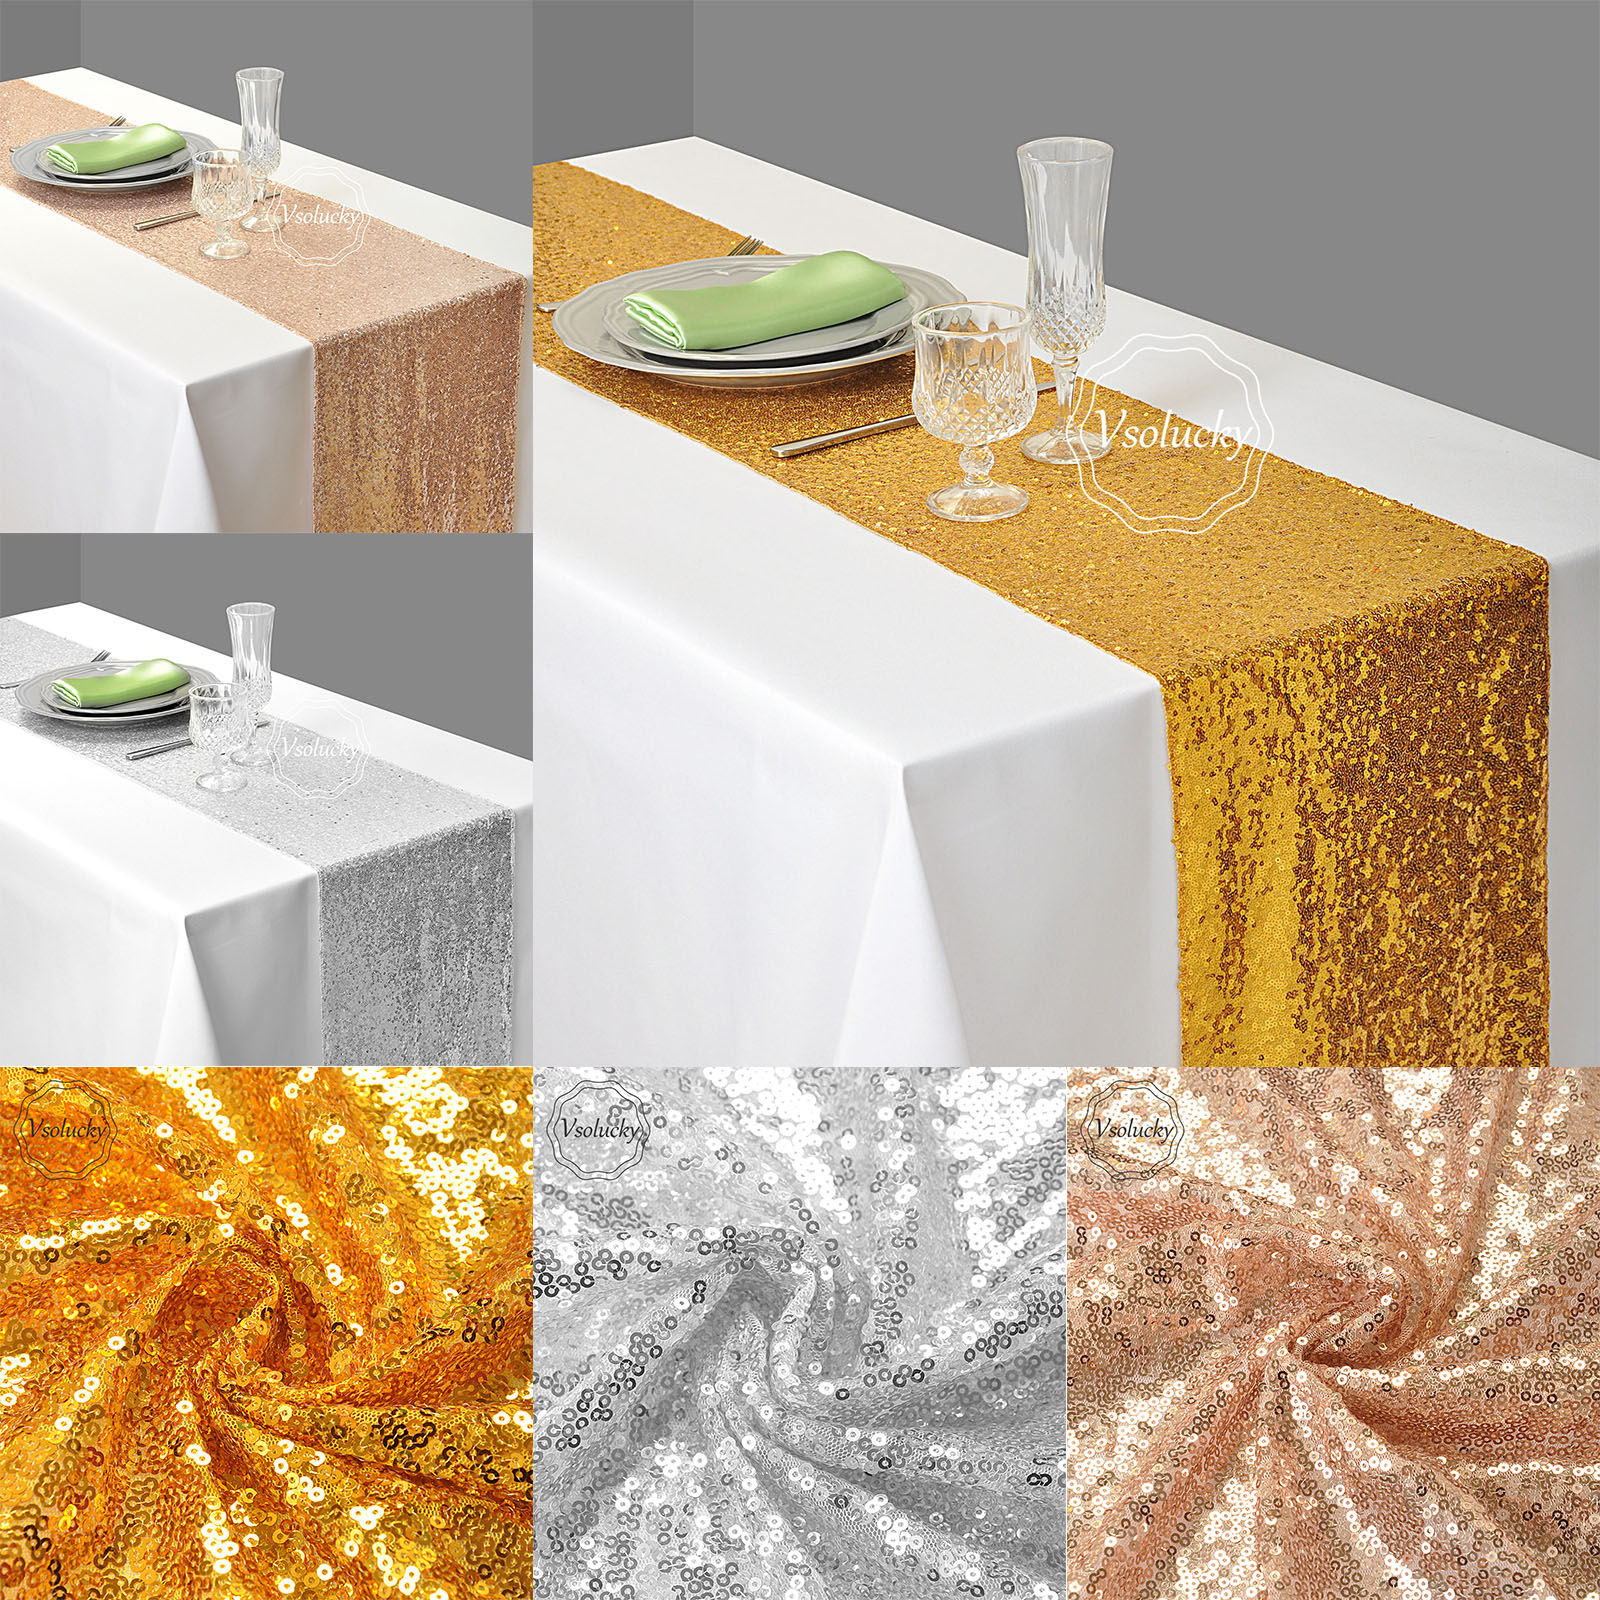 Party Diy Decorations Audacious 30 X 275cm Gold Silver Rose Gold Sequin Fabric Table Runner Sparkly Bling For Wedding Party Diy Decoration Supplies 12x108 Event & Party